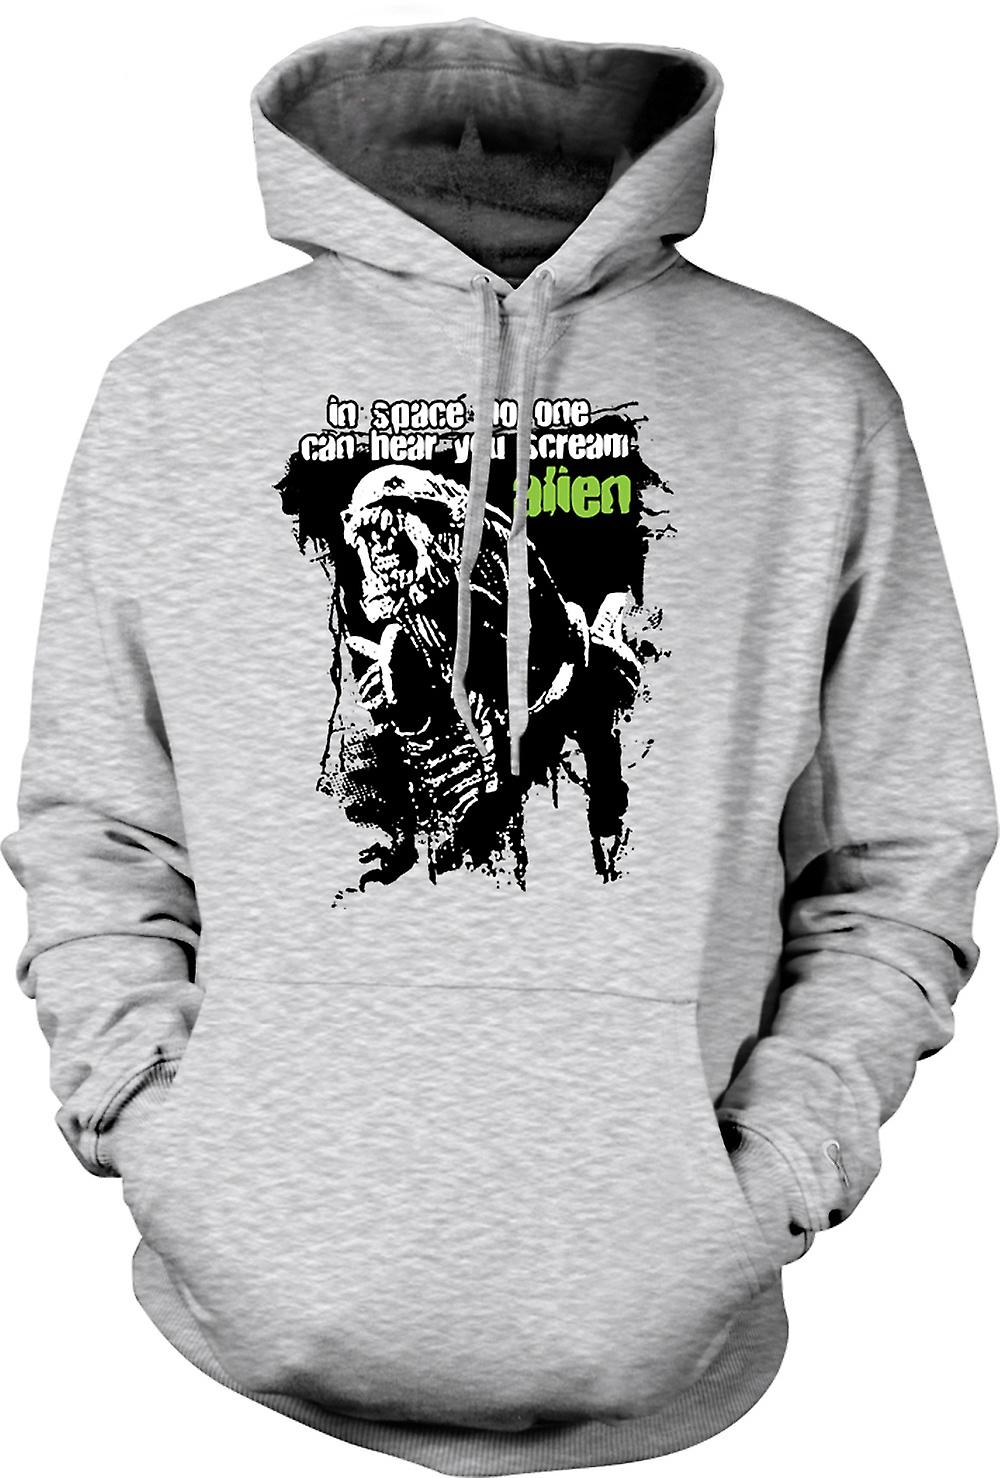 Mens Hoodie - Hear You Scream Alien - Sci Fi